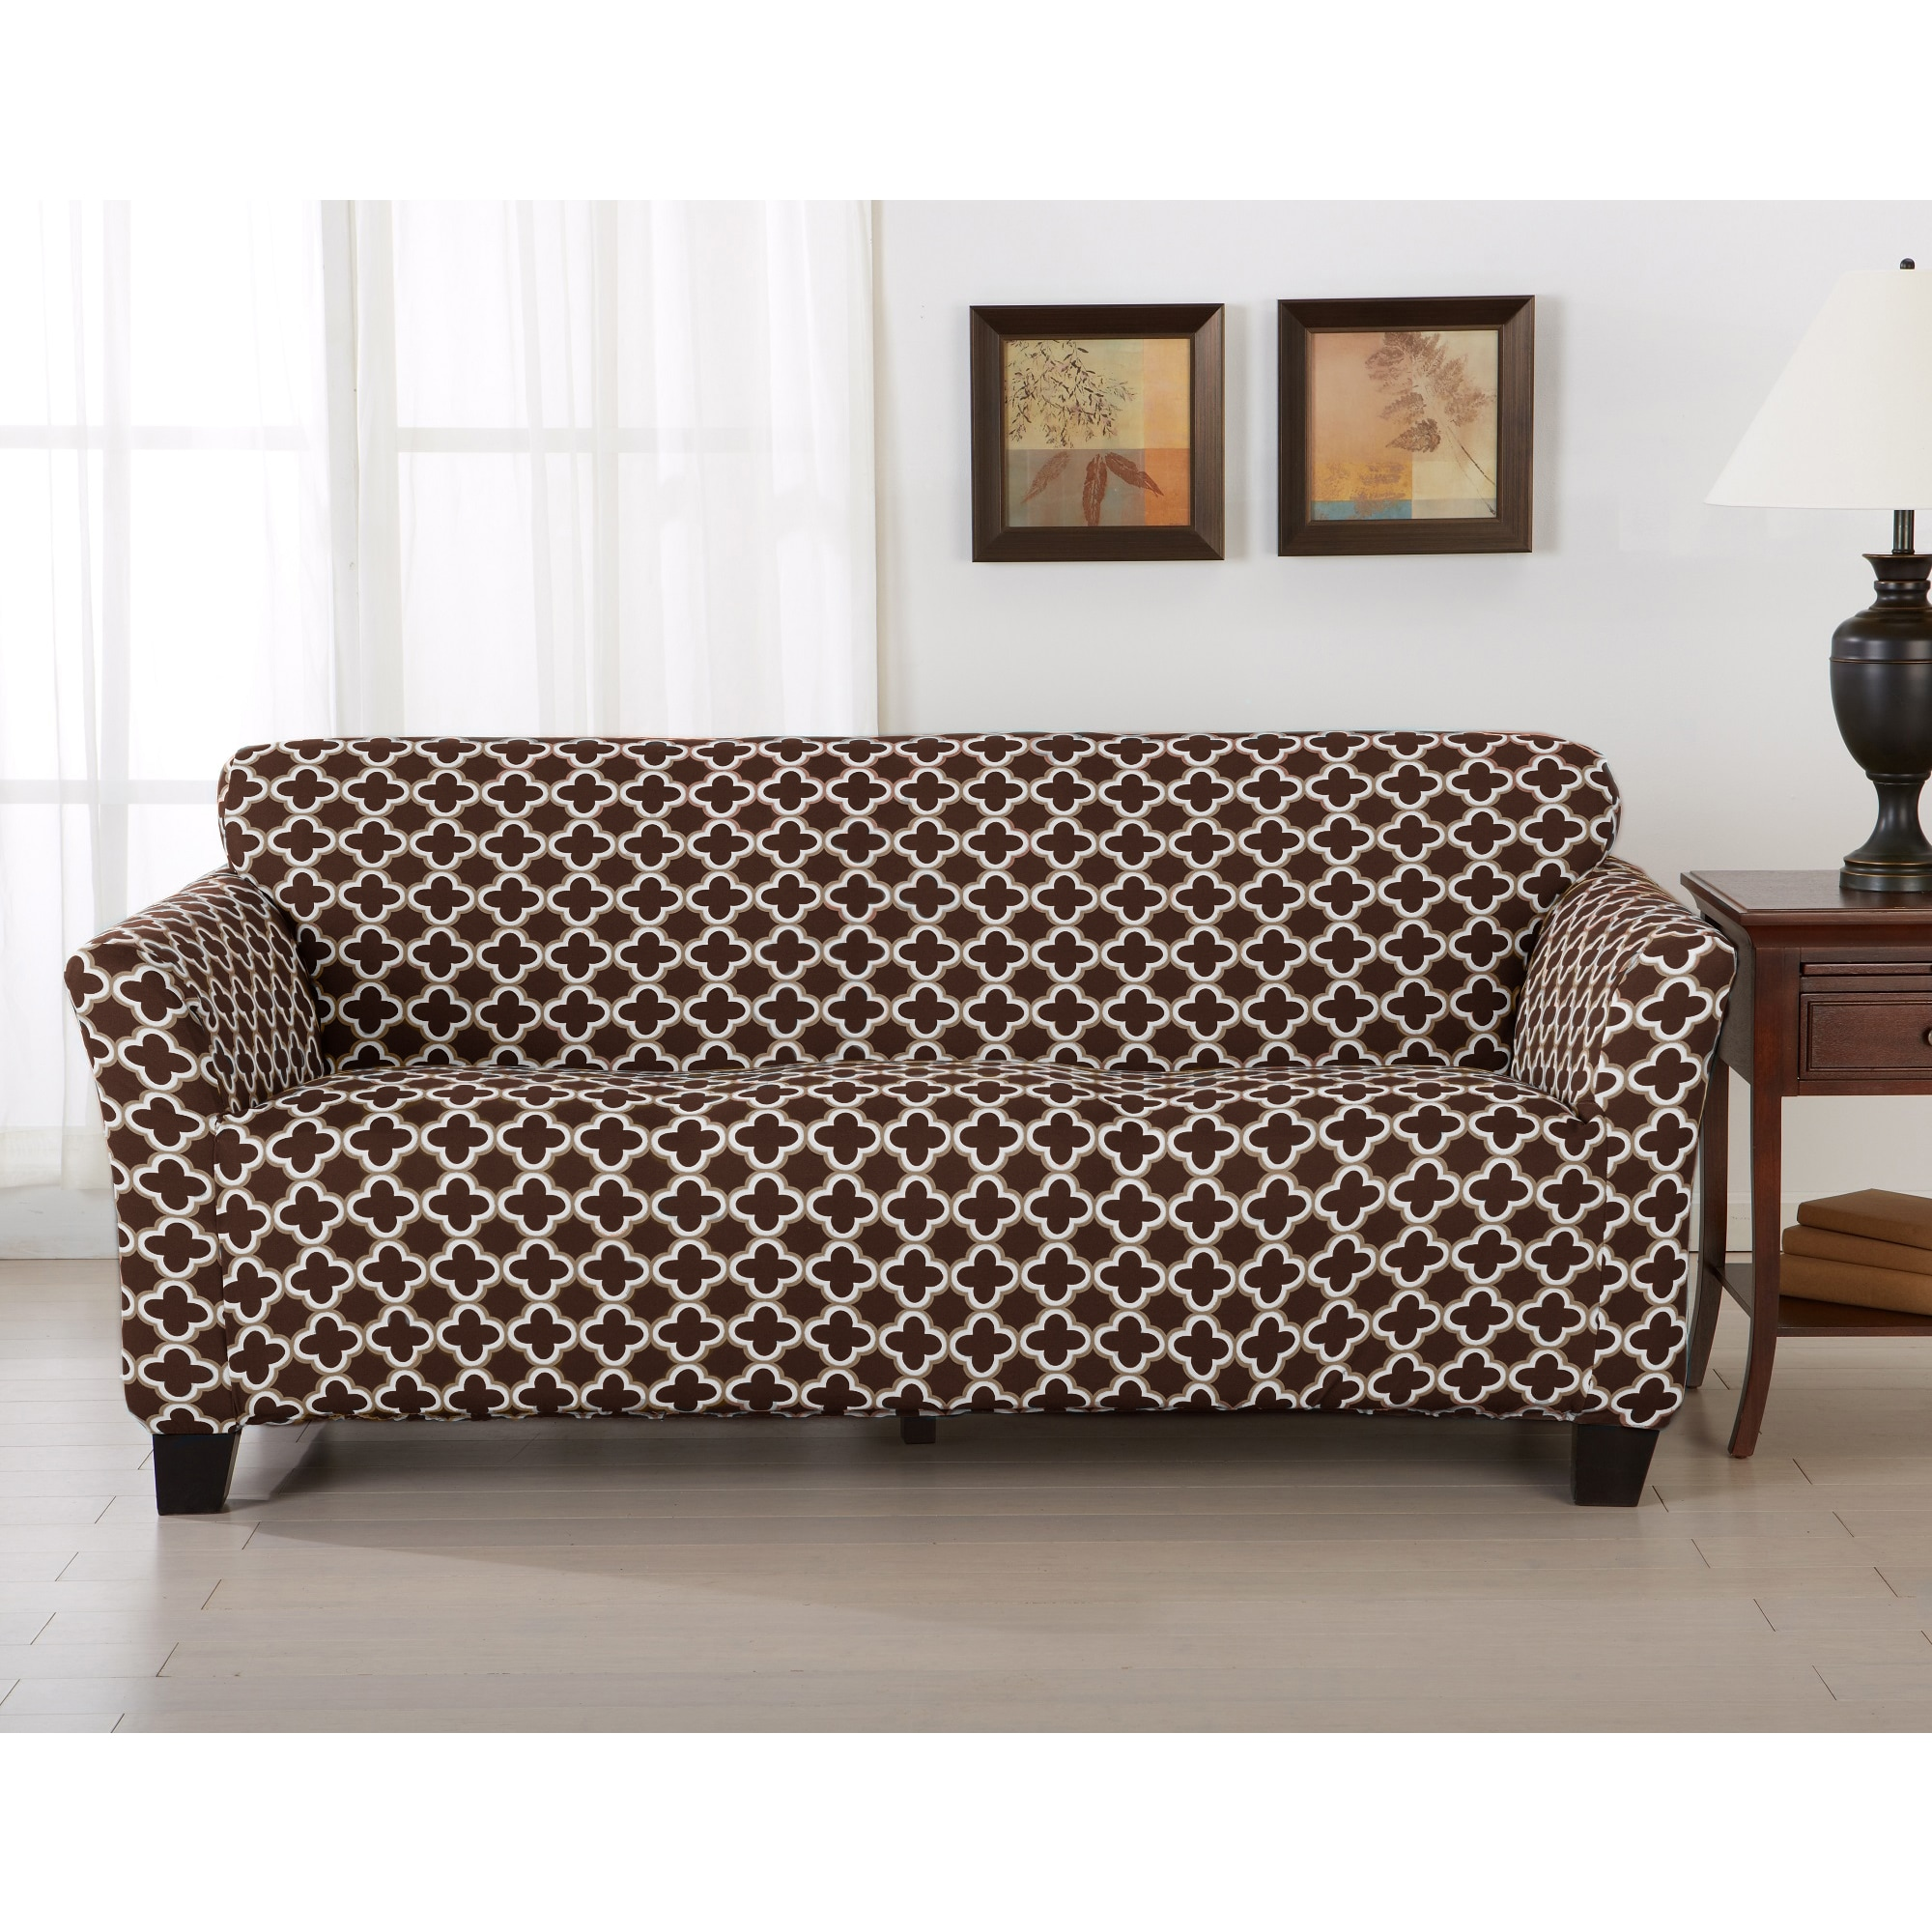 Couch Cover Sofa Home Fashion Designs Brenna Collection Stretch Form Fitted Sofa Slipcover